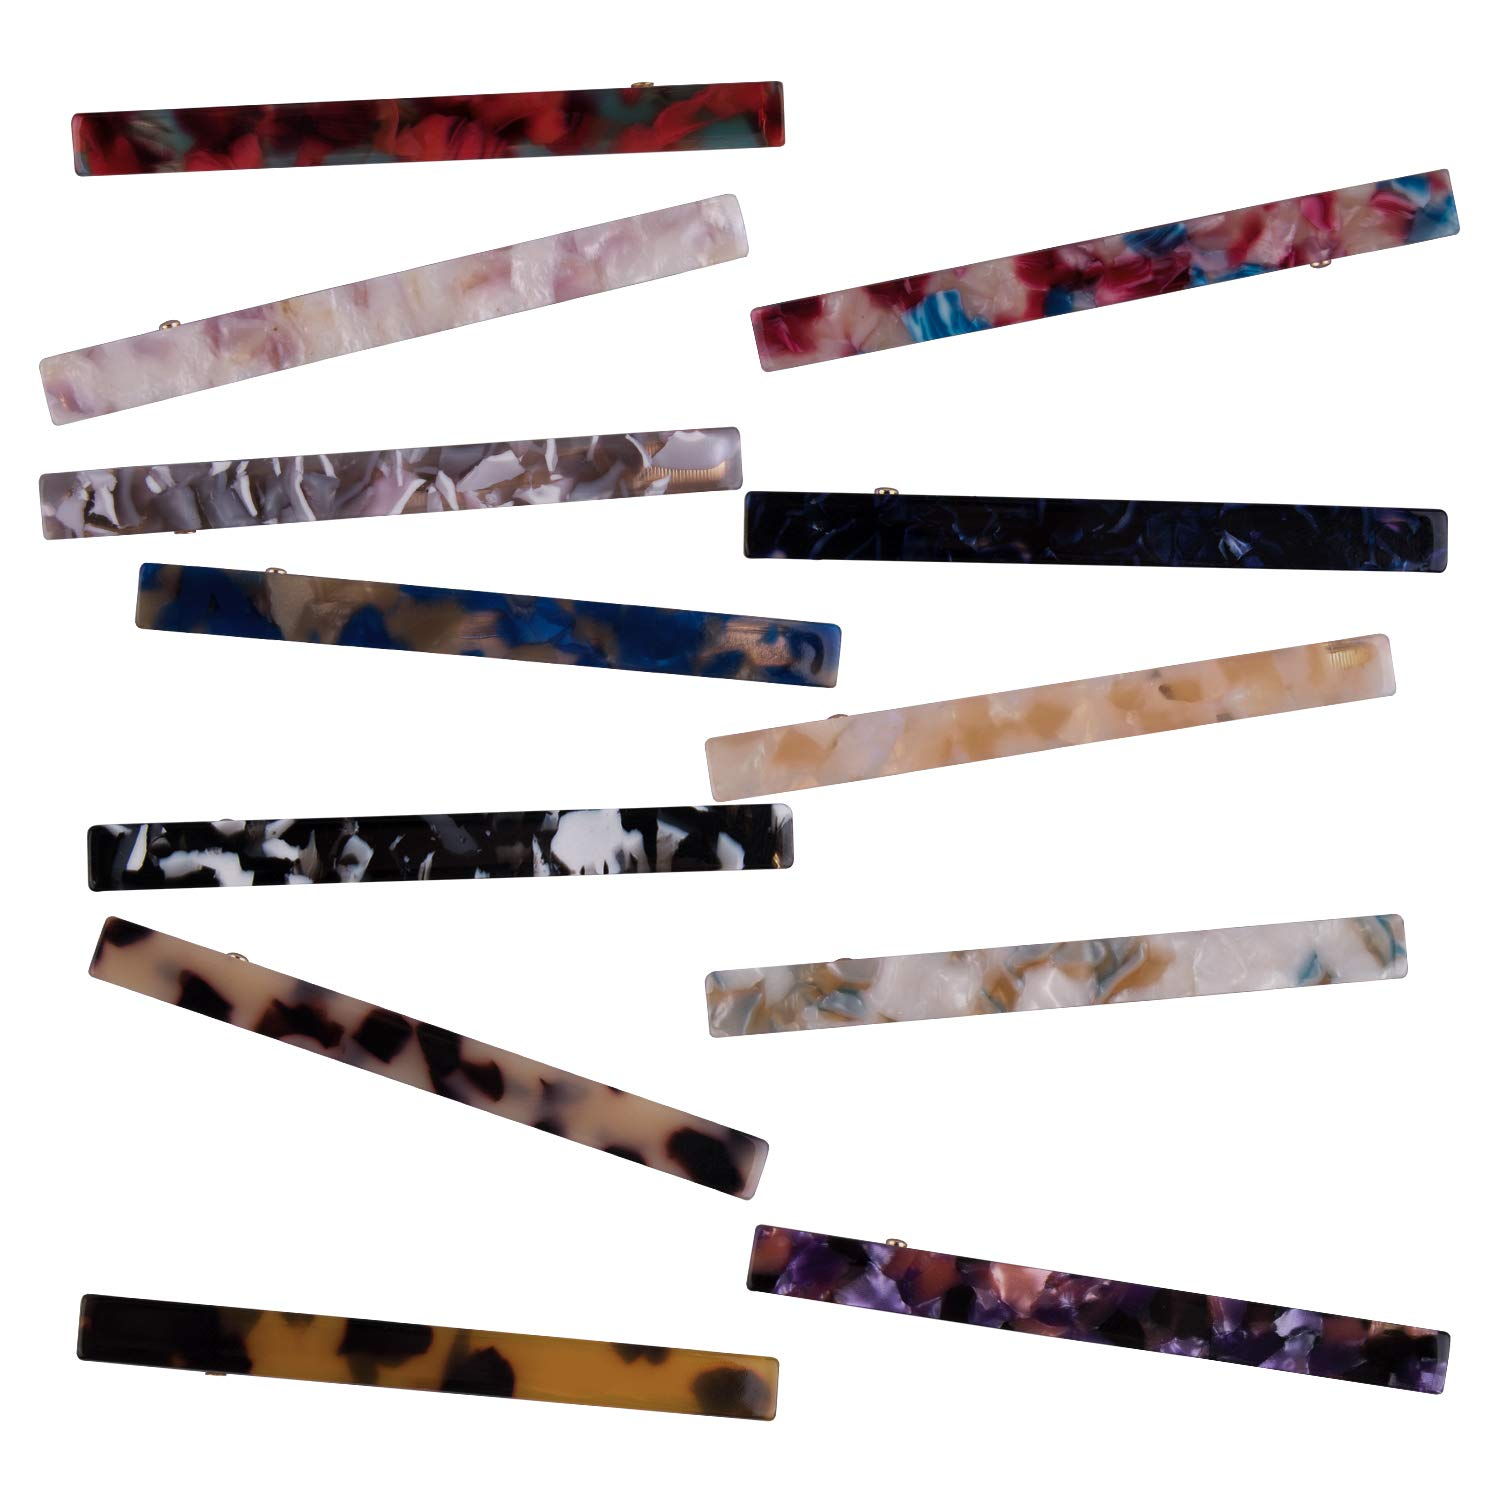 Duufin 12 Pieces Acrylic Hair Clips Resin Alligator Hair Clips Duckbill Hair Clips Elegant Barrettes for Women and Girls